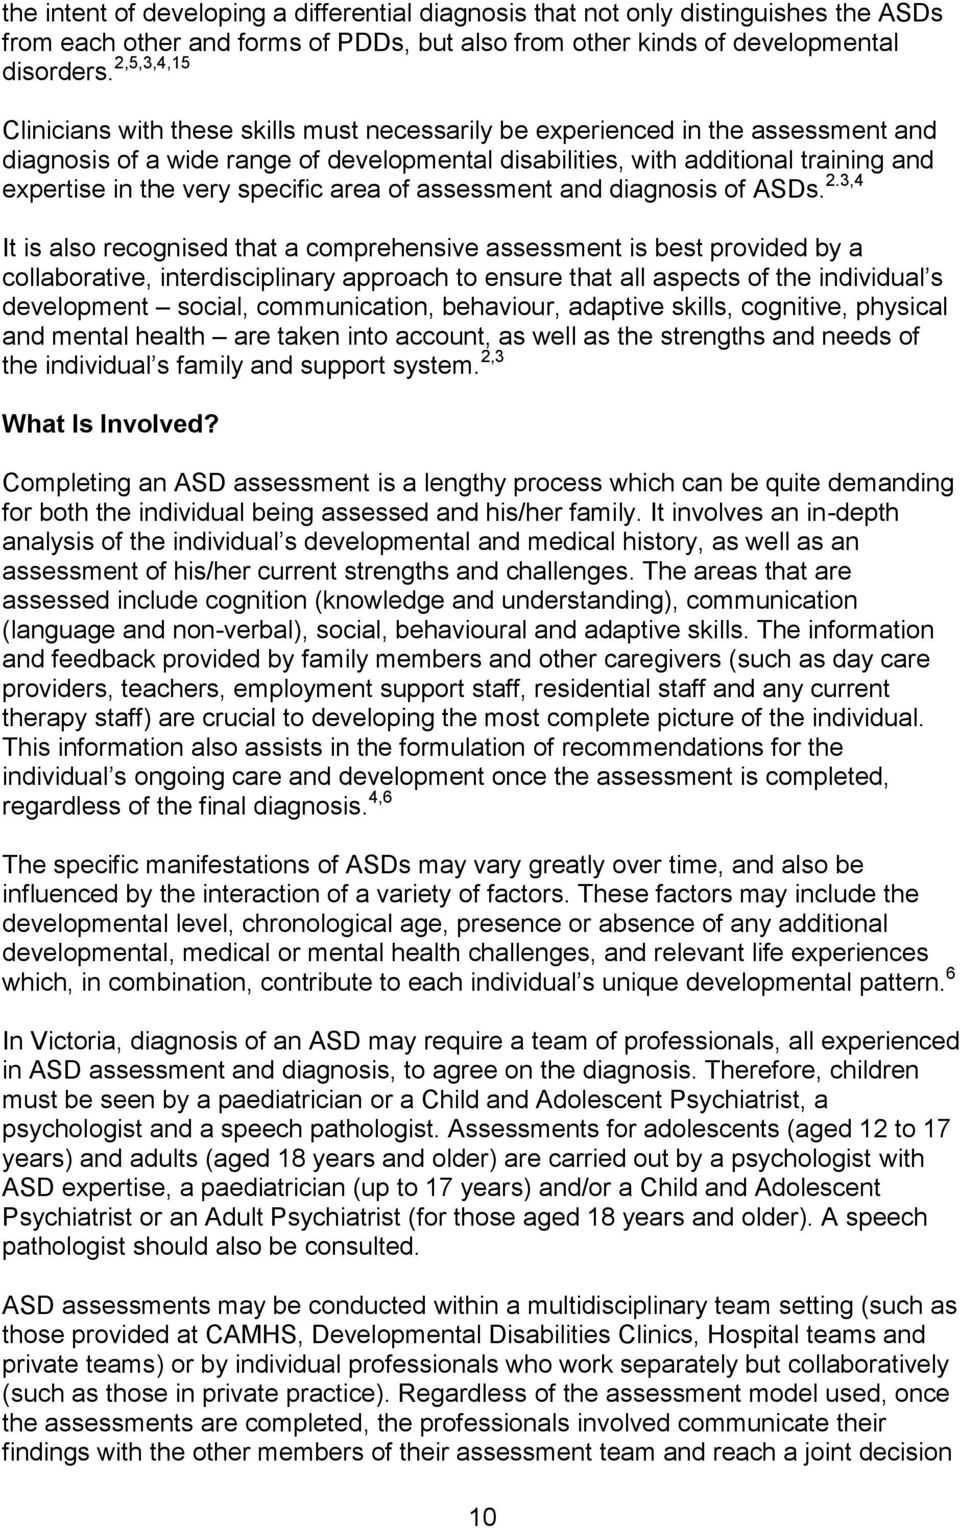 very specific area of assessment and diagnosis of ASDs. 2.